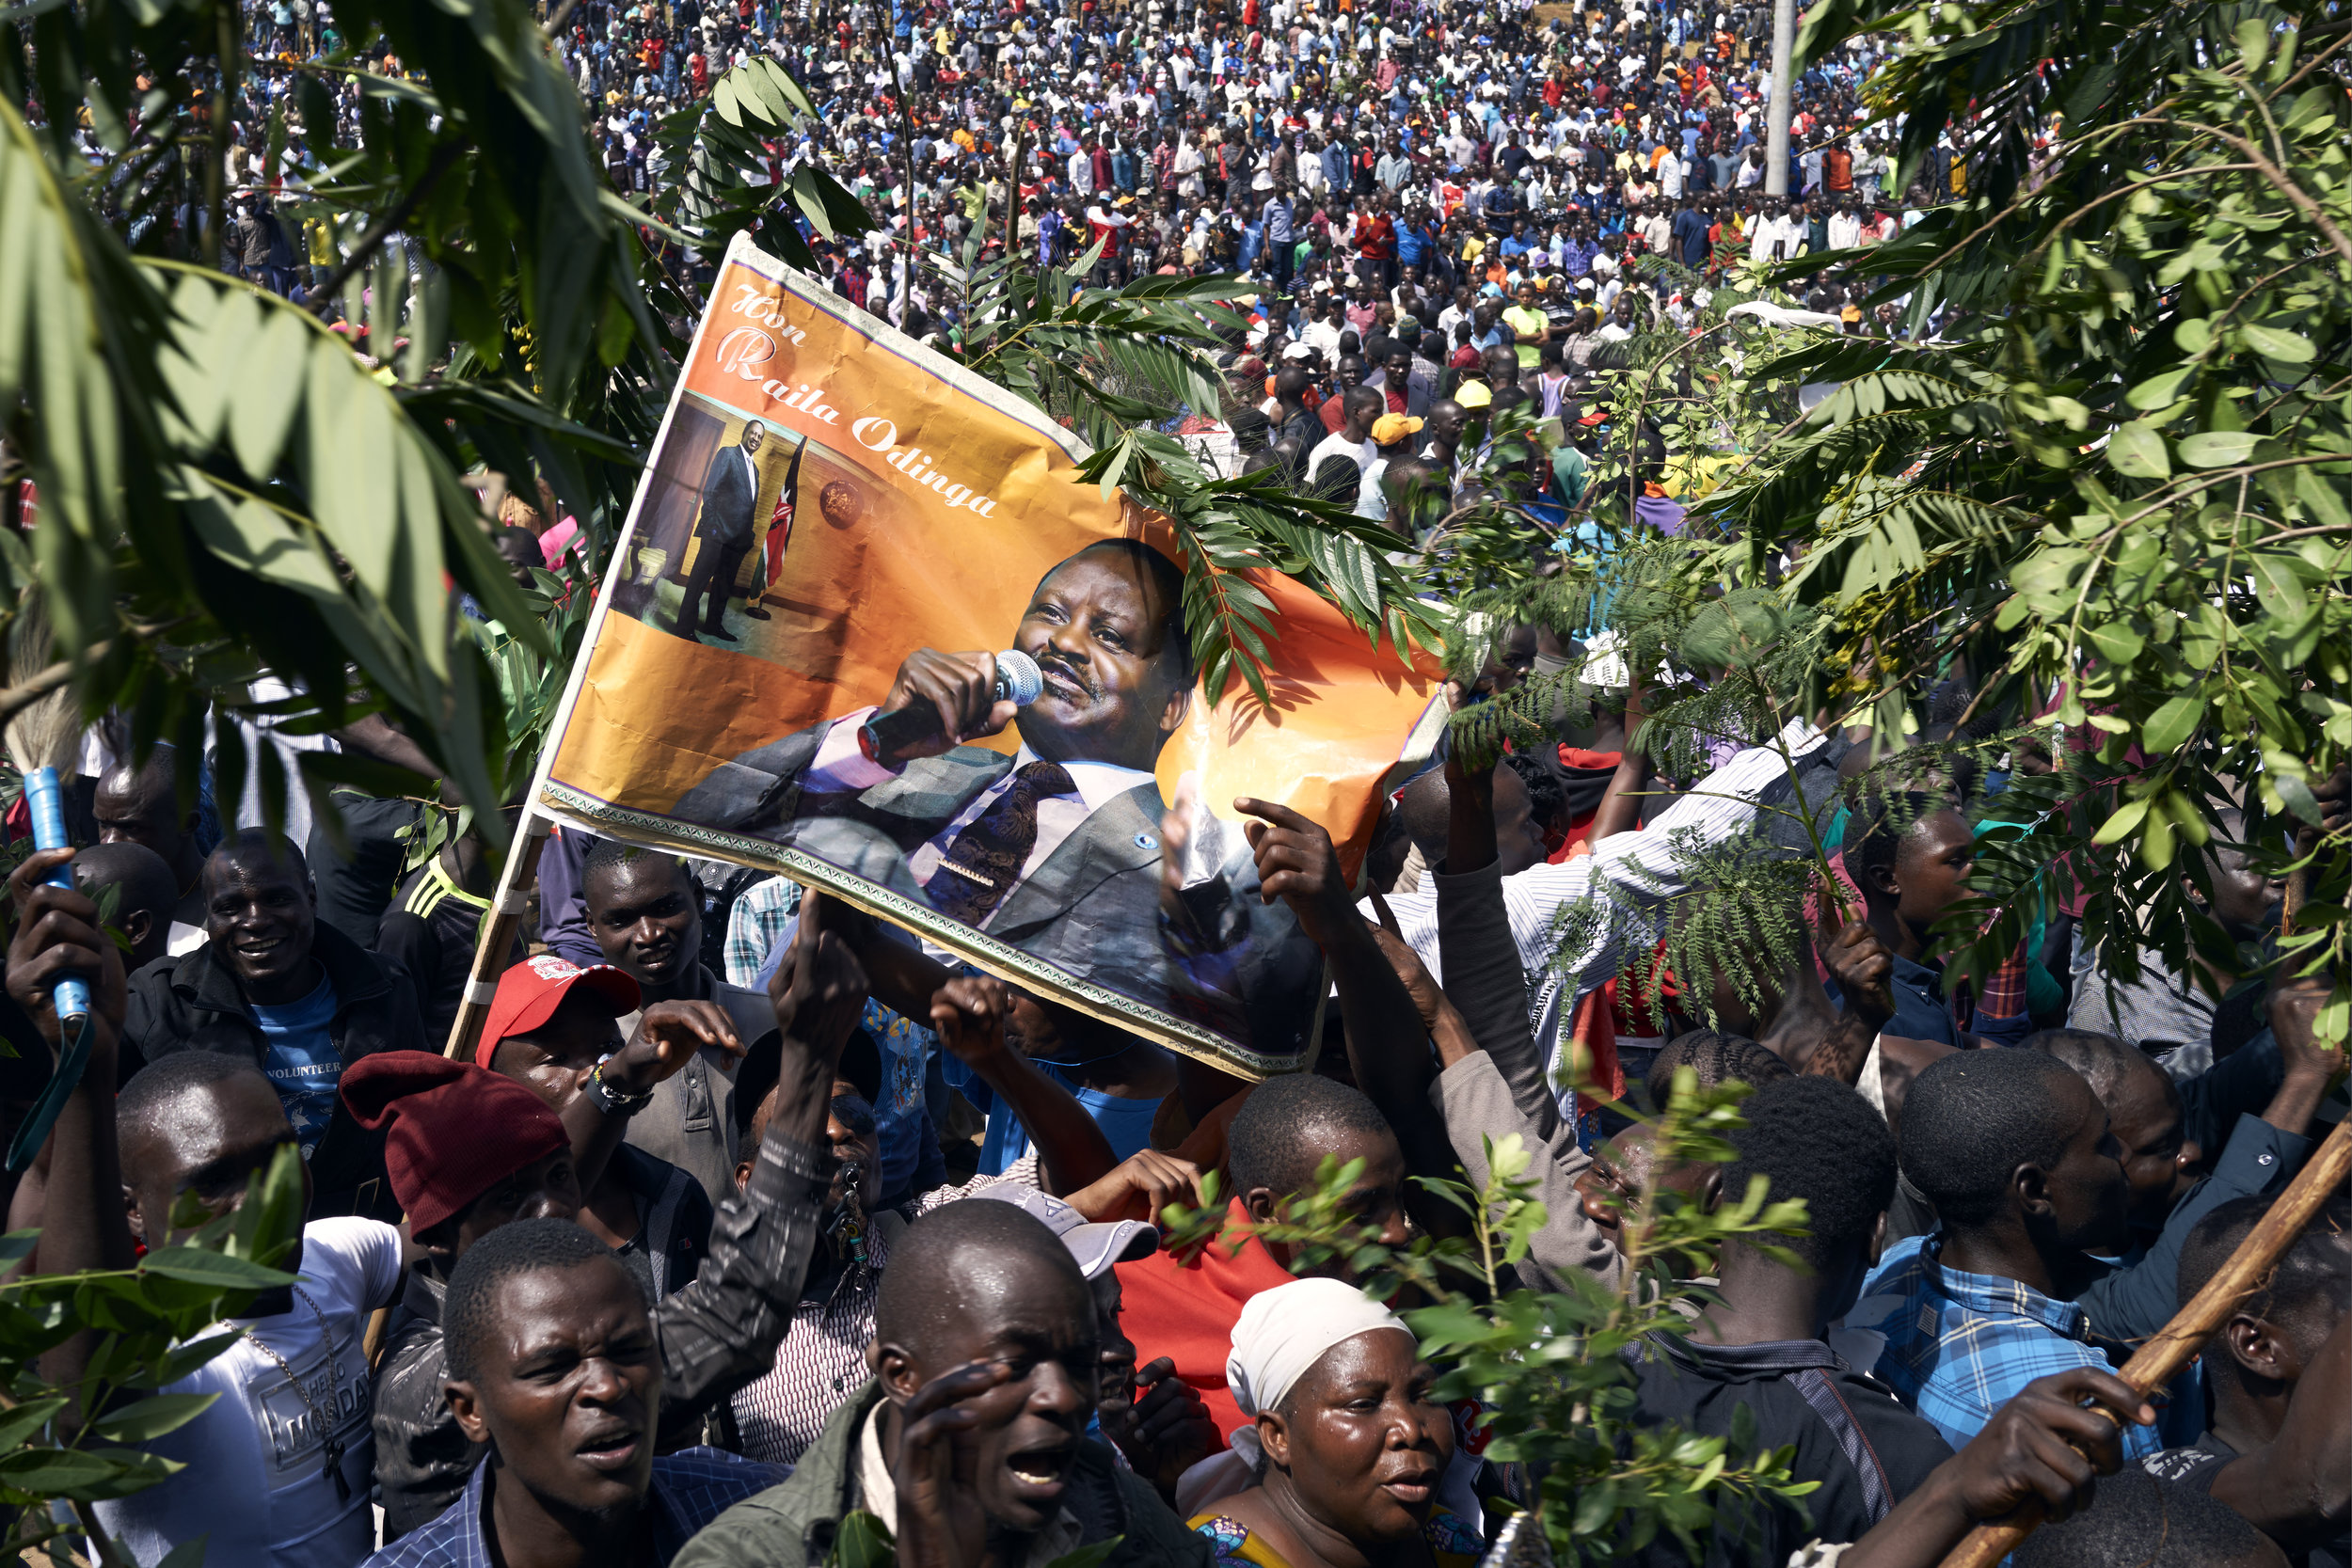 Crowds gather in Uhuru Park, Nairobi to witness the controversial presidential inauguration of Raila Odinga, leader of the opposition to the still-incumbent Jubilee Party. 30/01/18